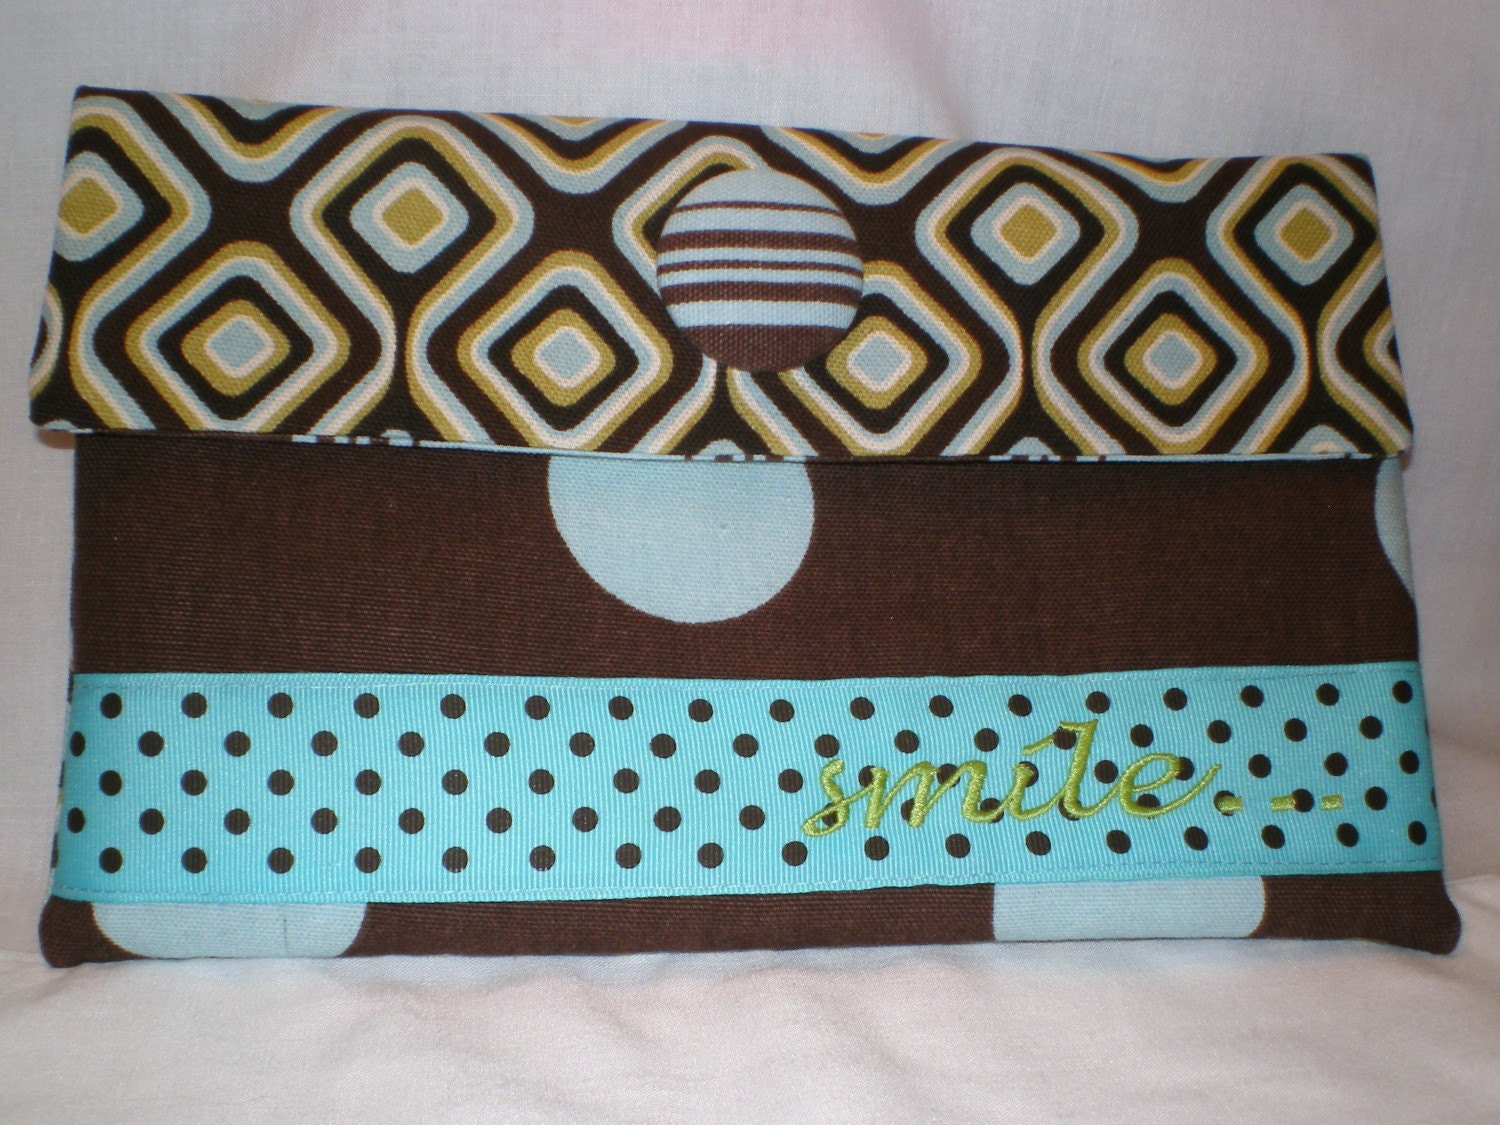 teal chocolate brown embroidered cosmetic bag